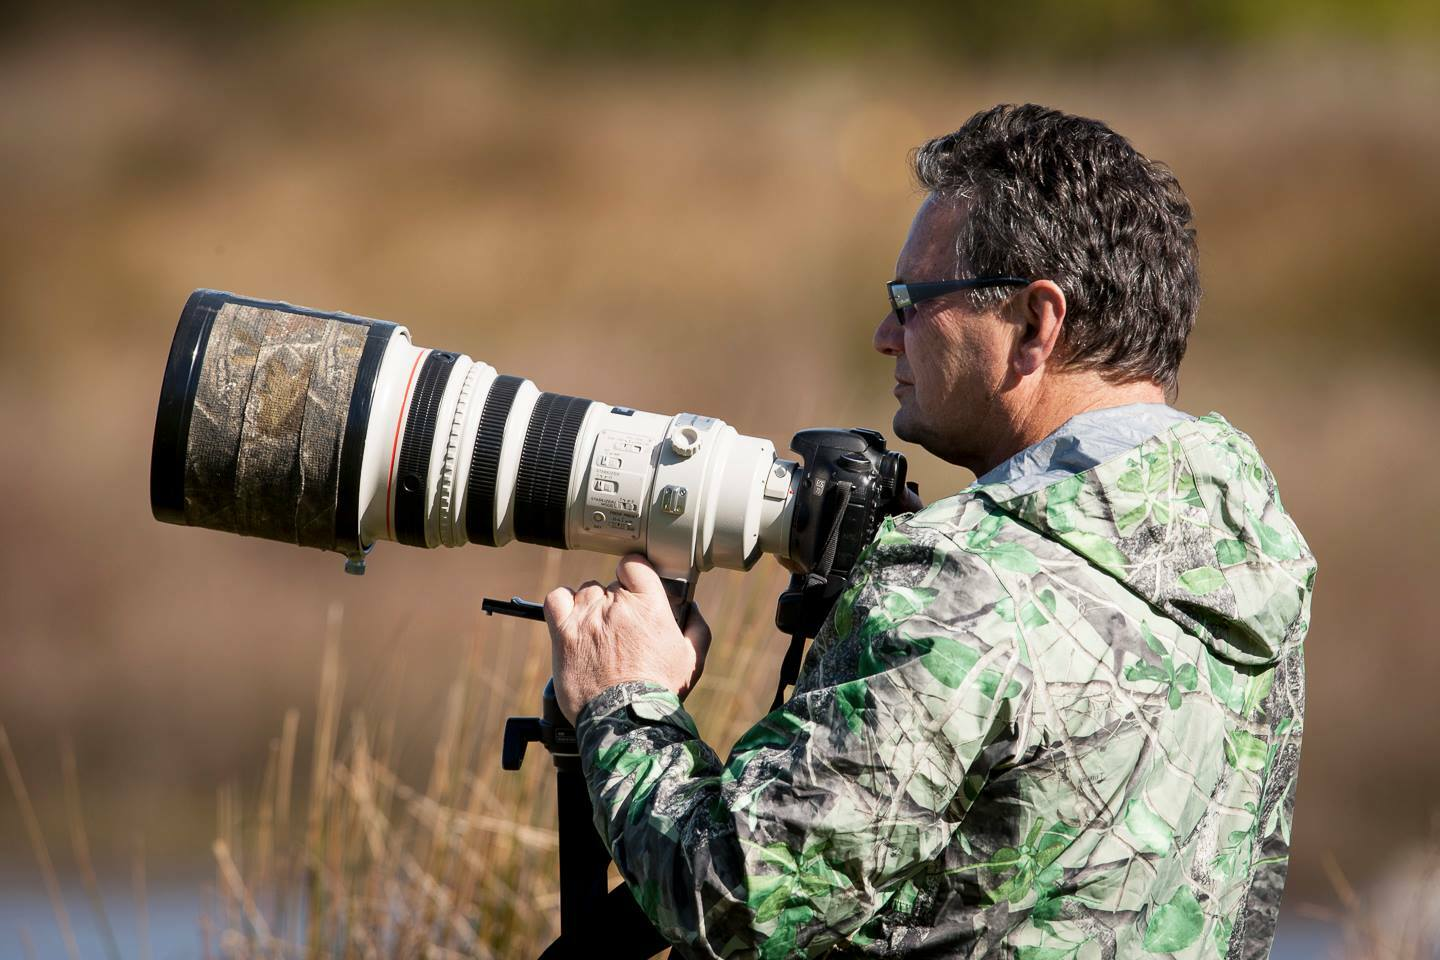 A talk by Nature Photographer Murry Cave